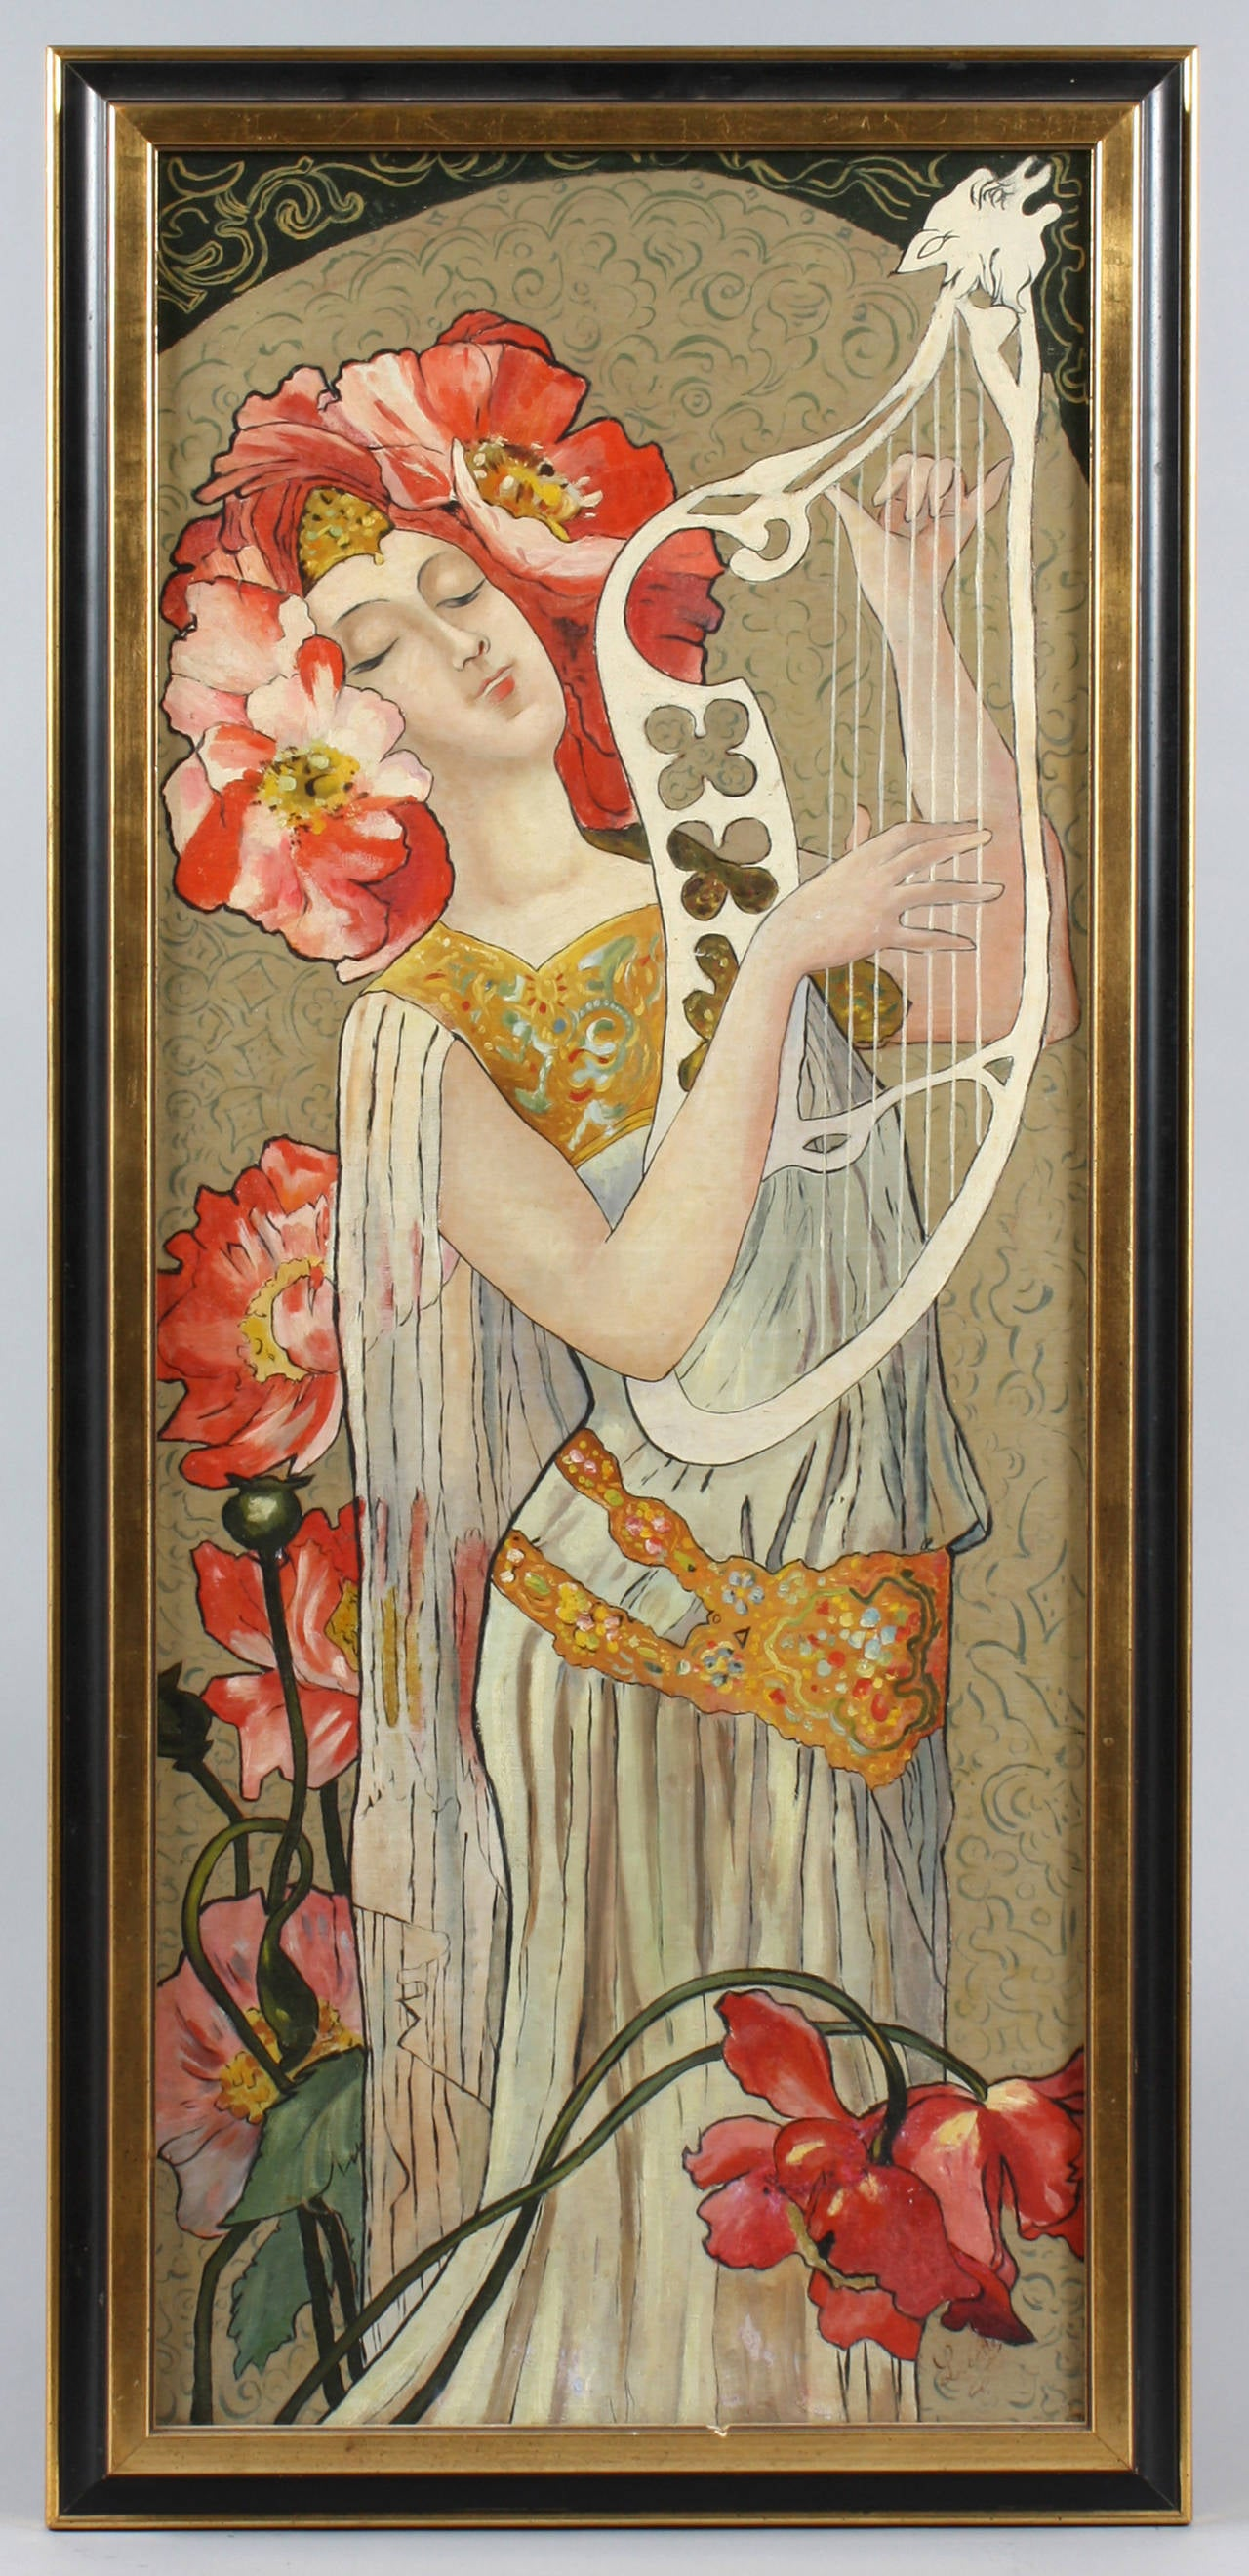 Unknown Figurative Painting - Art Nouveau Portrait of a Woman with Poppies in her Hair